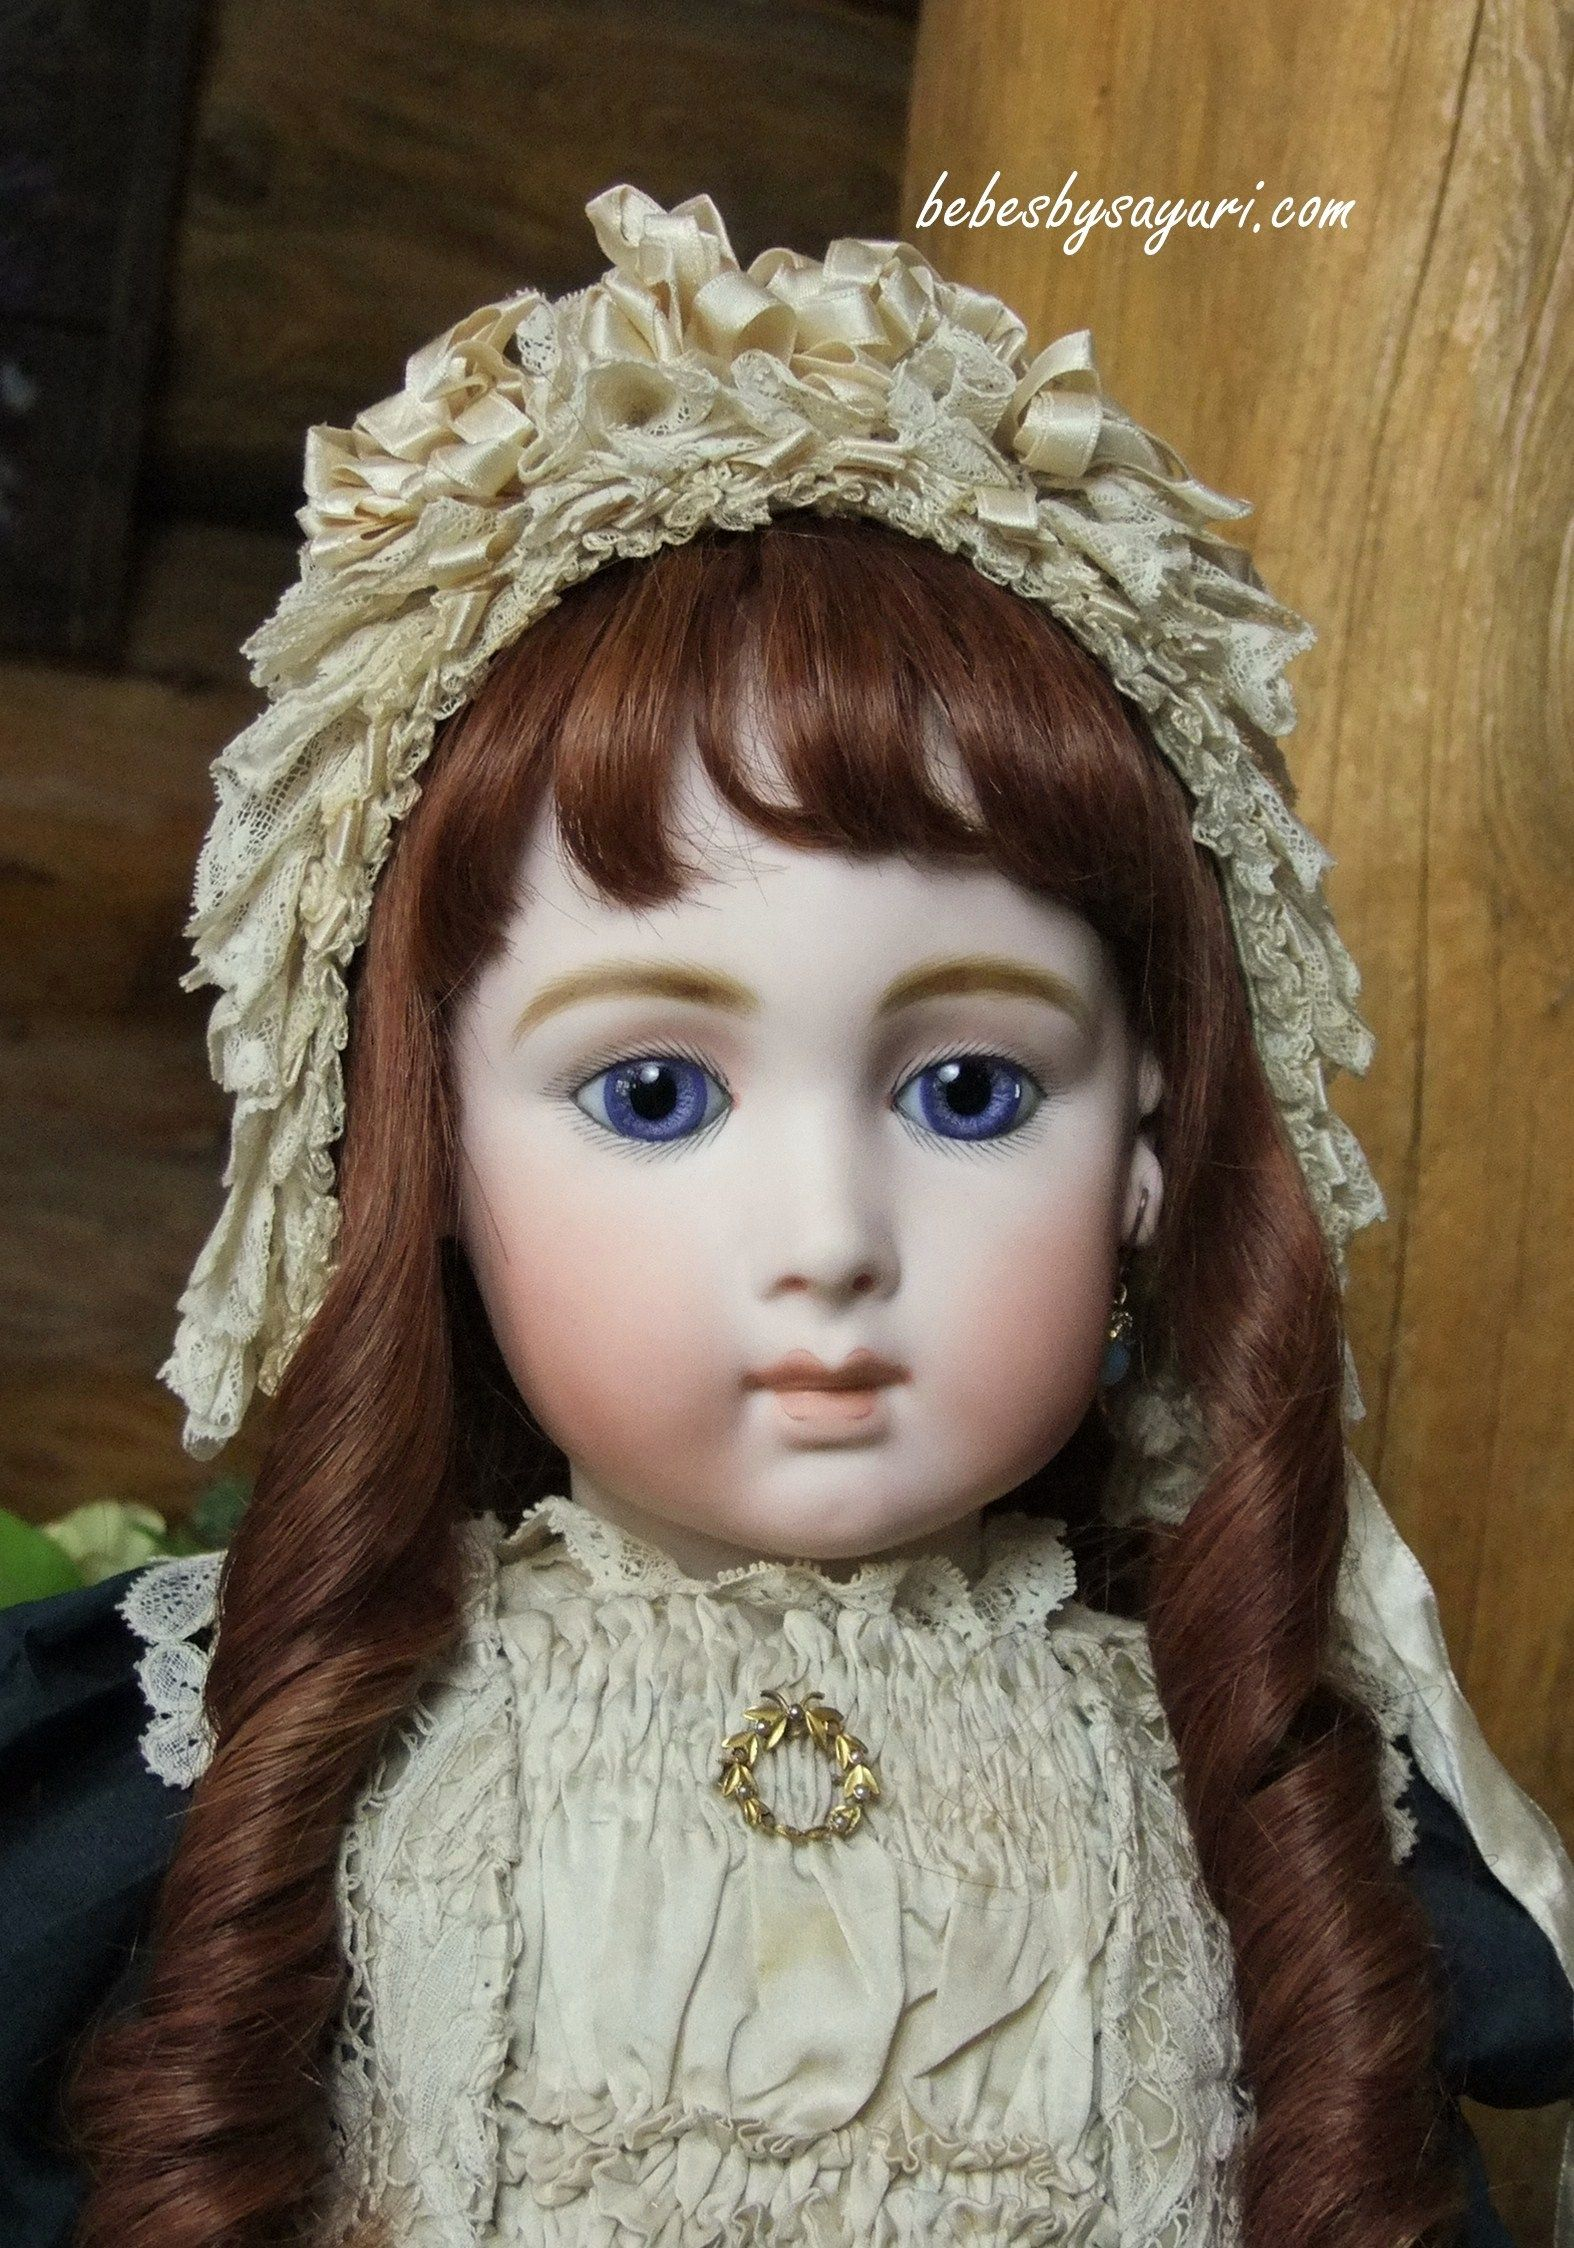 23 inch Jumeau Triste with antique eyes - Bebes by Sayuri